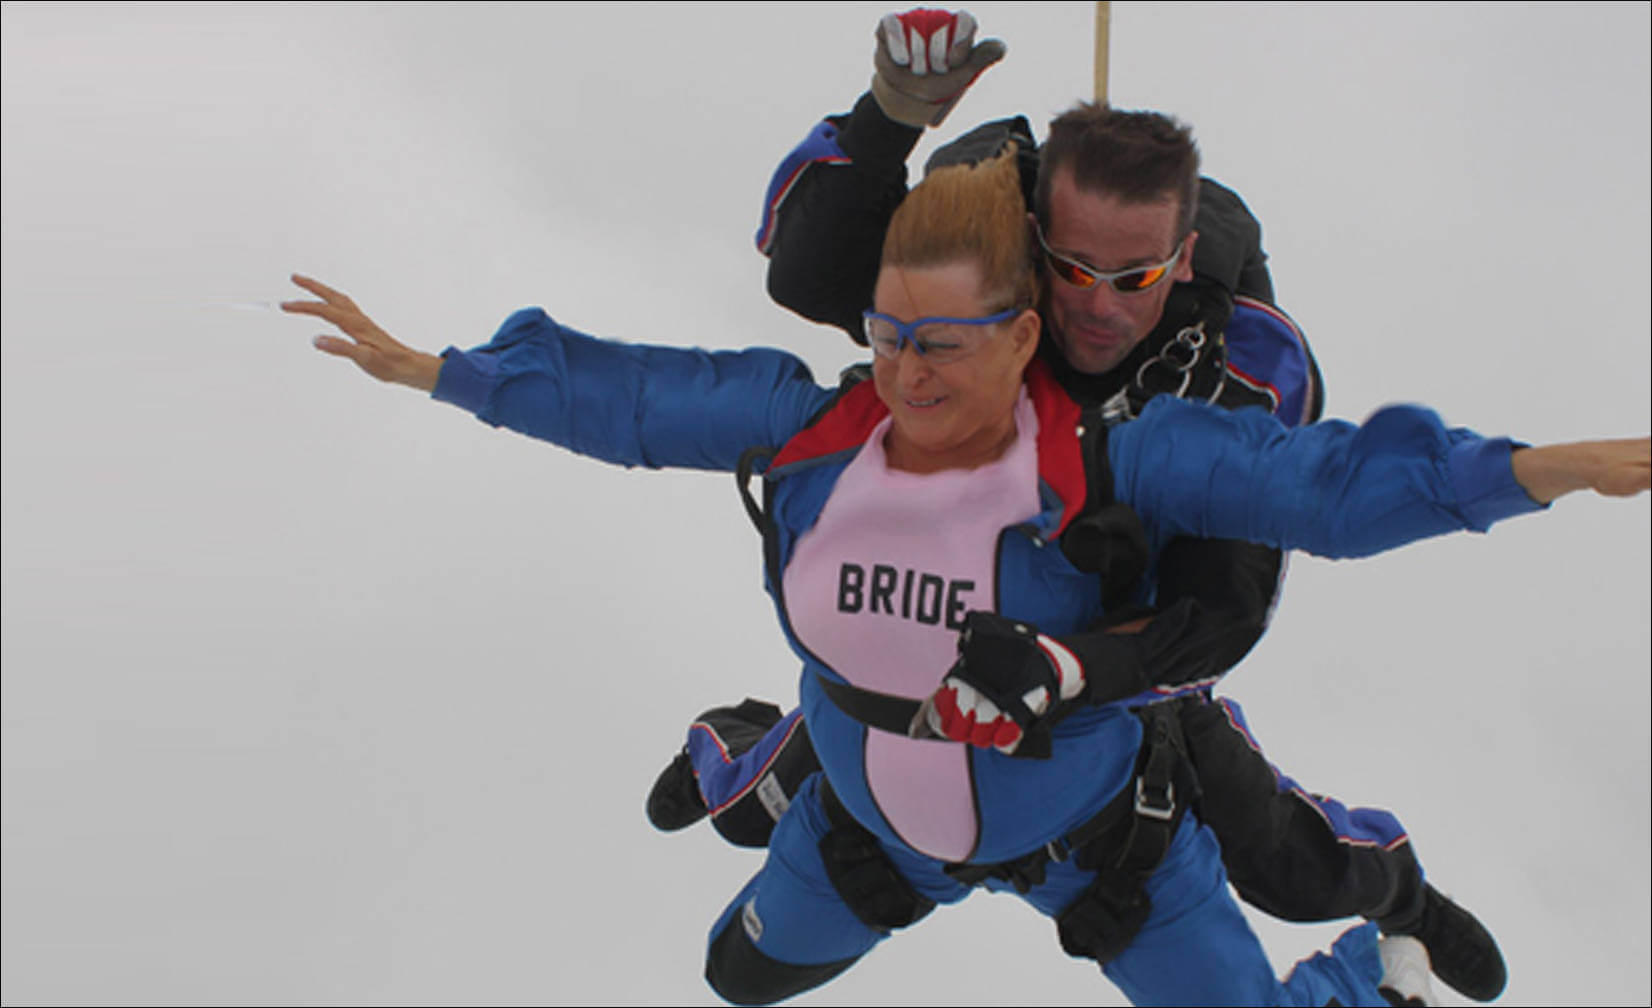 skydives following her 2011 wedding